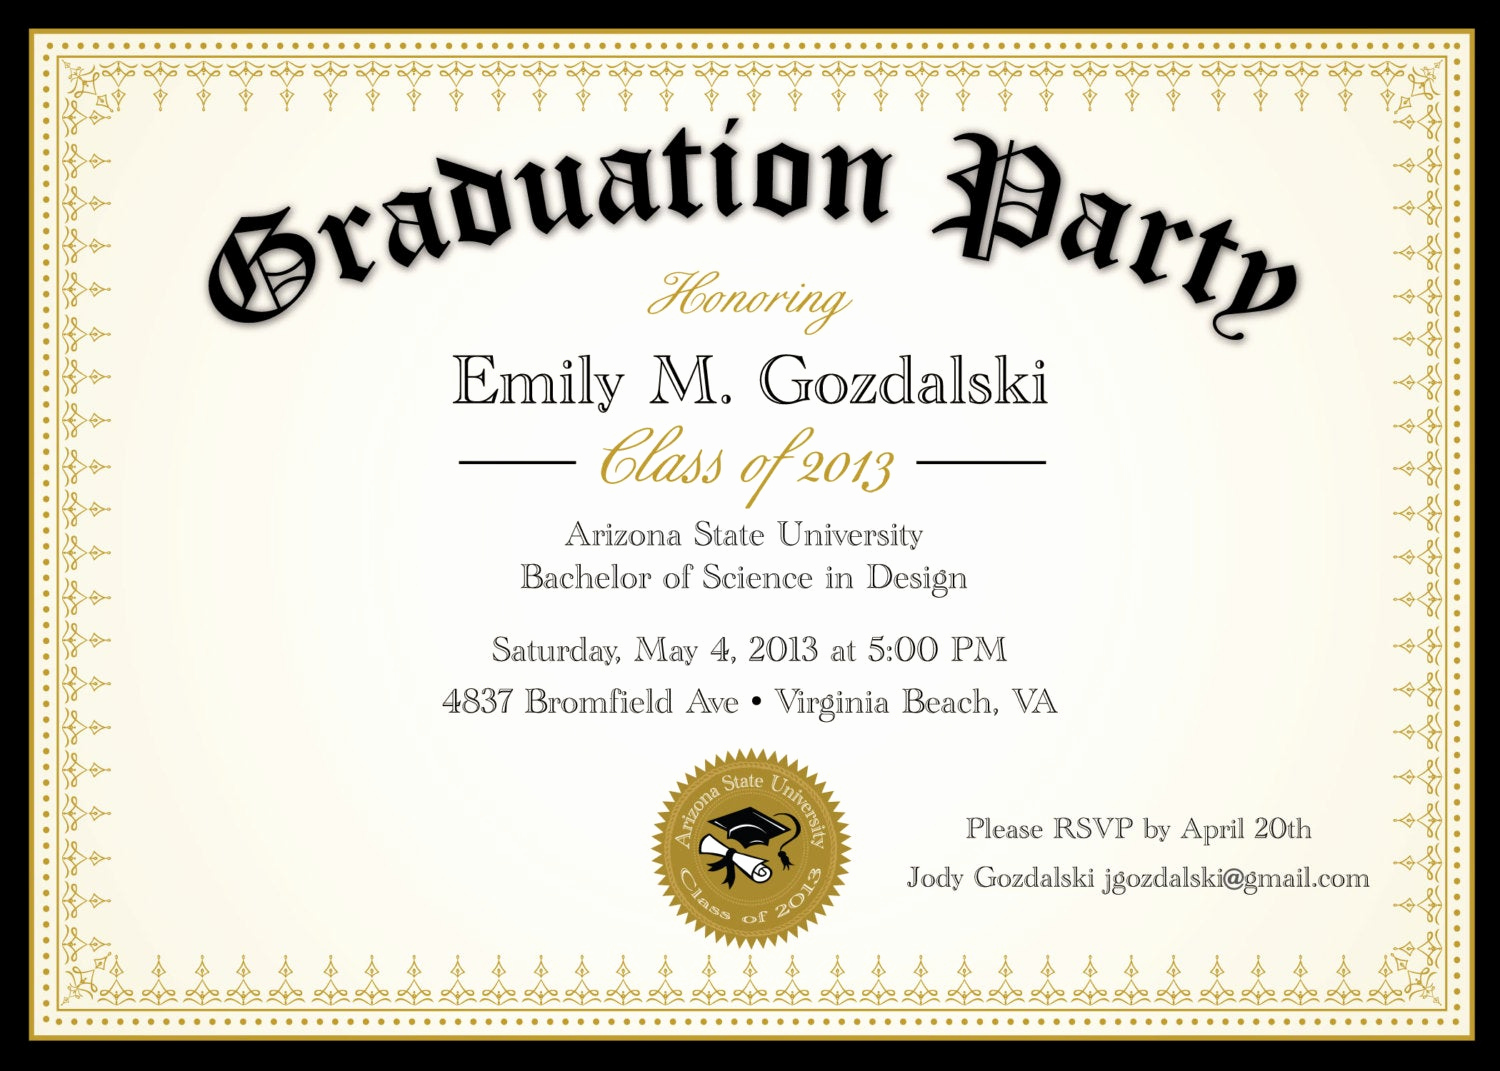 Graduation Party Invitations Templates Inspirational Diploma Graduation Party Invitations Grad by Announceitfavors